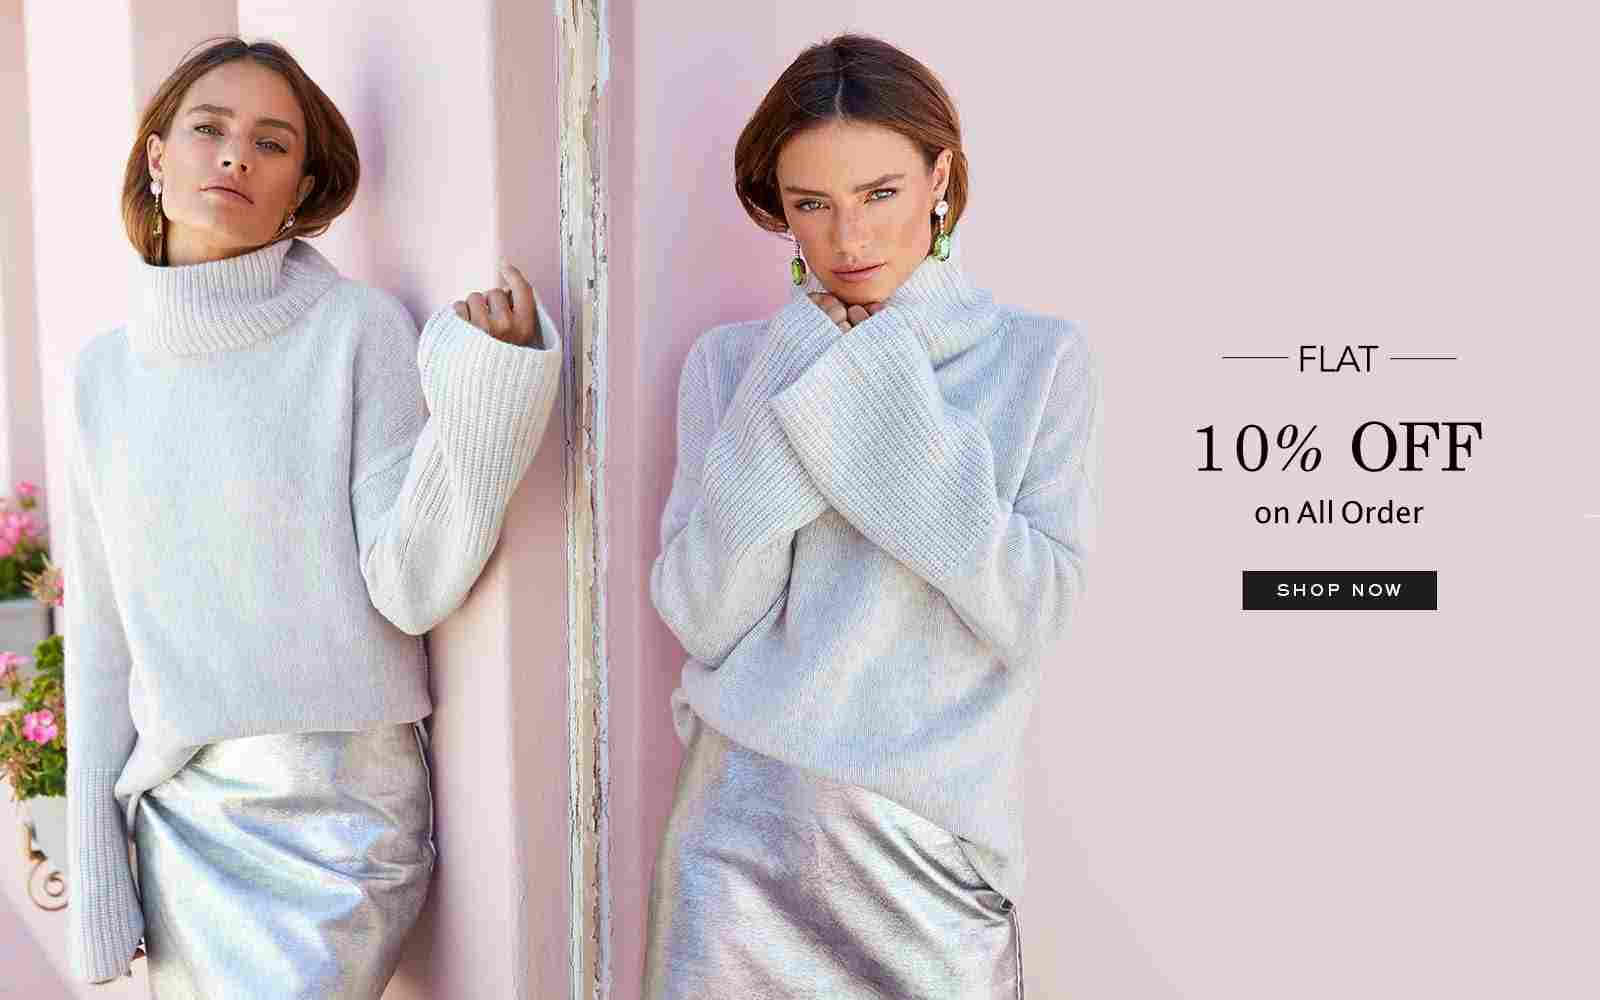 Get 10% Off on Sitewide